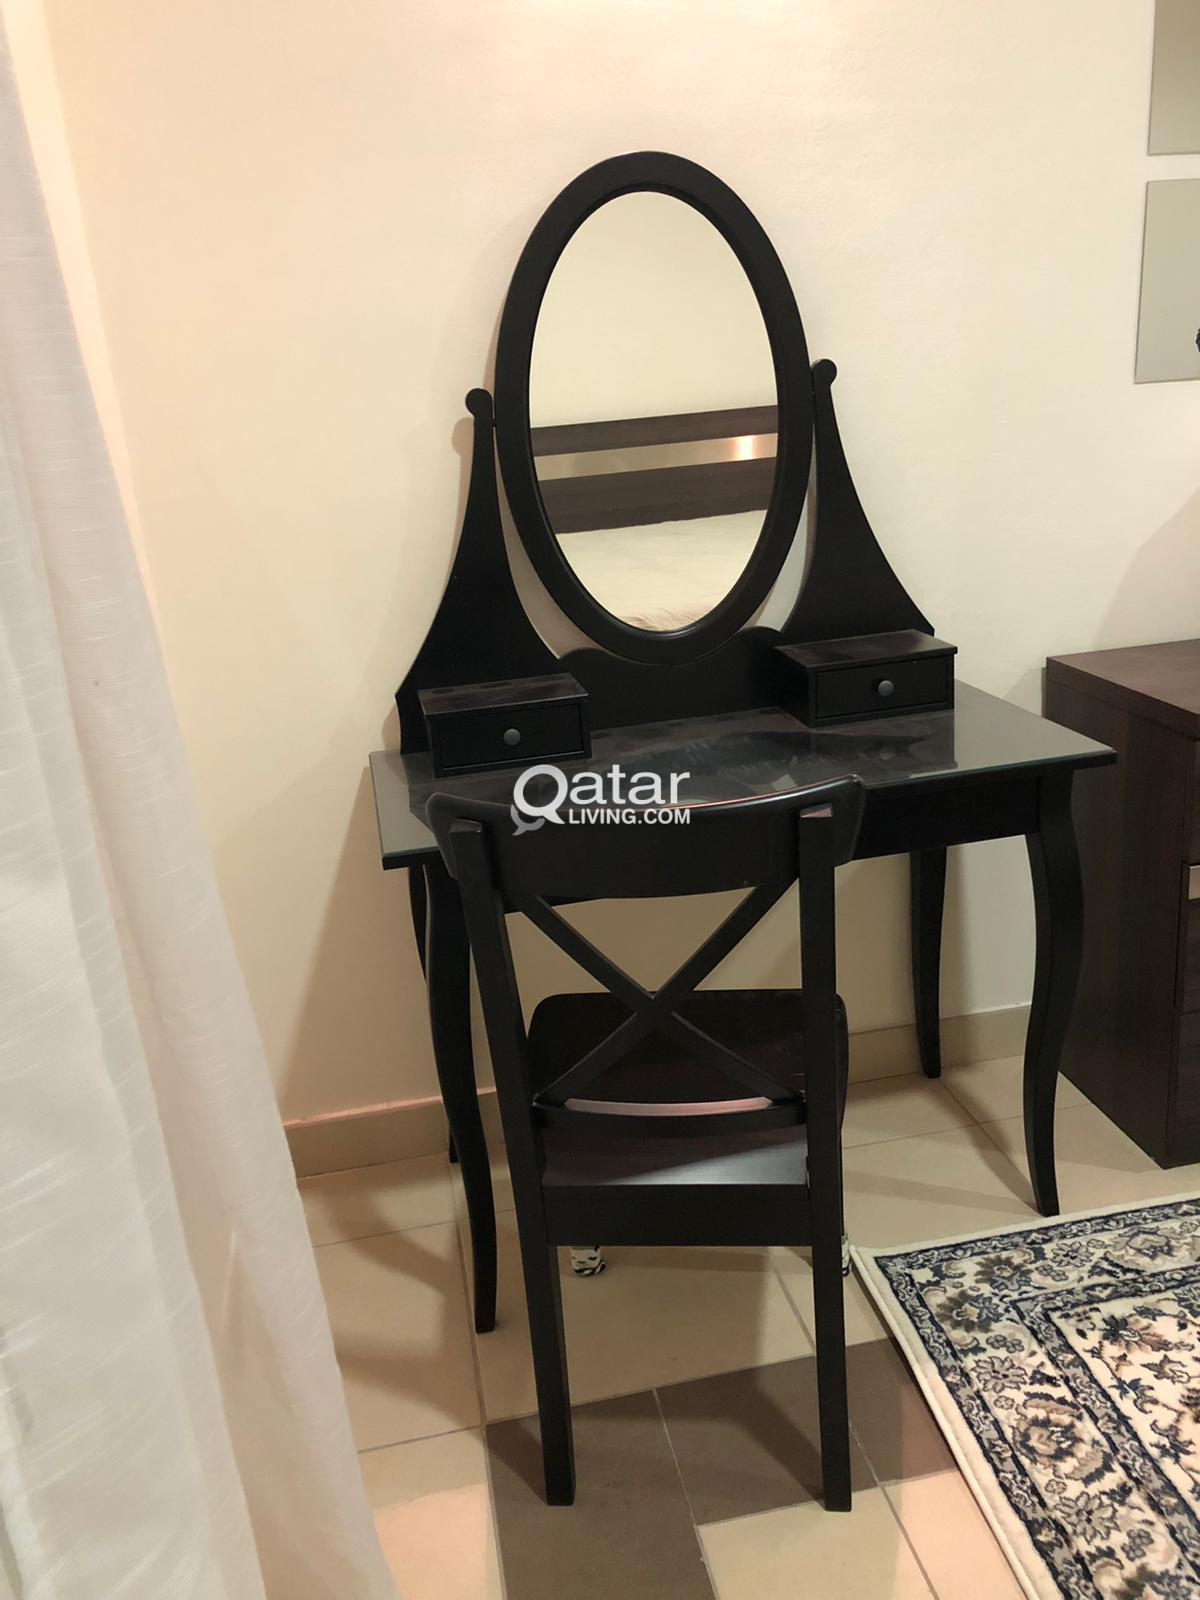 Dresser With Mirror And Chair From Ikea Qatar Living